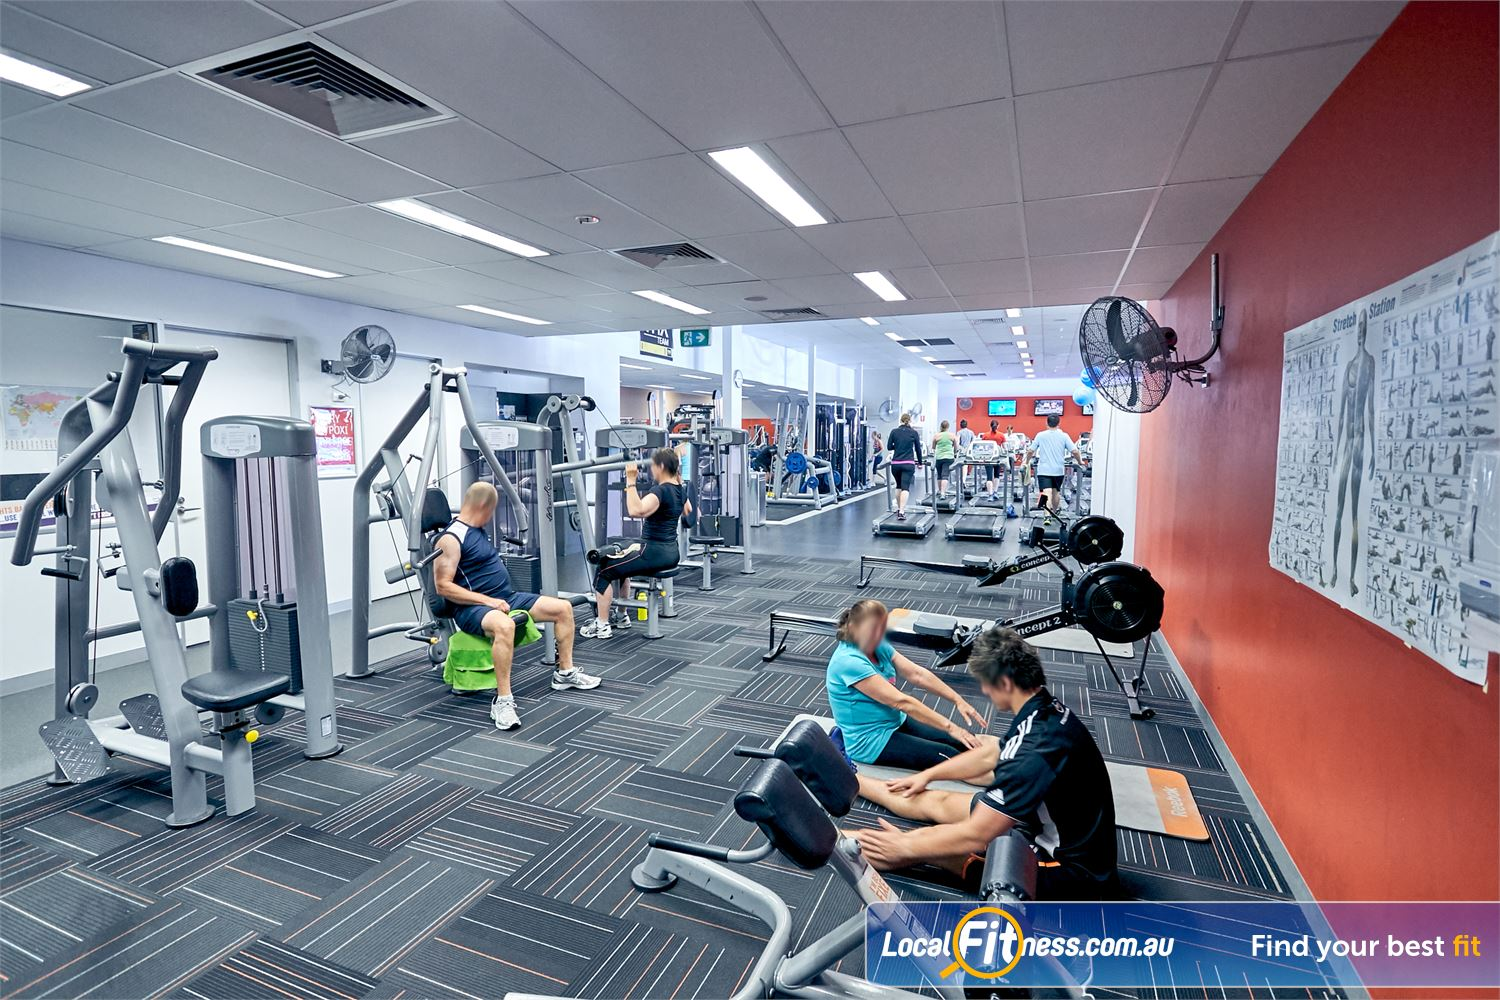 Goodlife Health Clubs Cross Roads Westbourne Park Our Westbourne Park gym is spread across 1800m2 of floorspace.